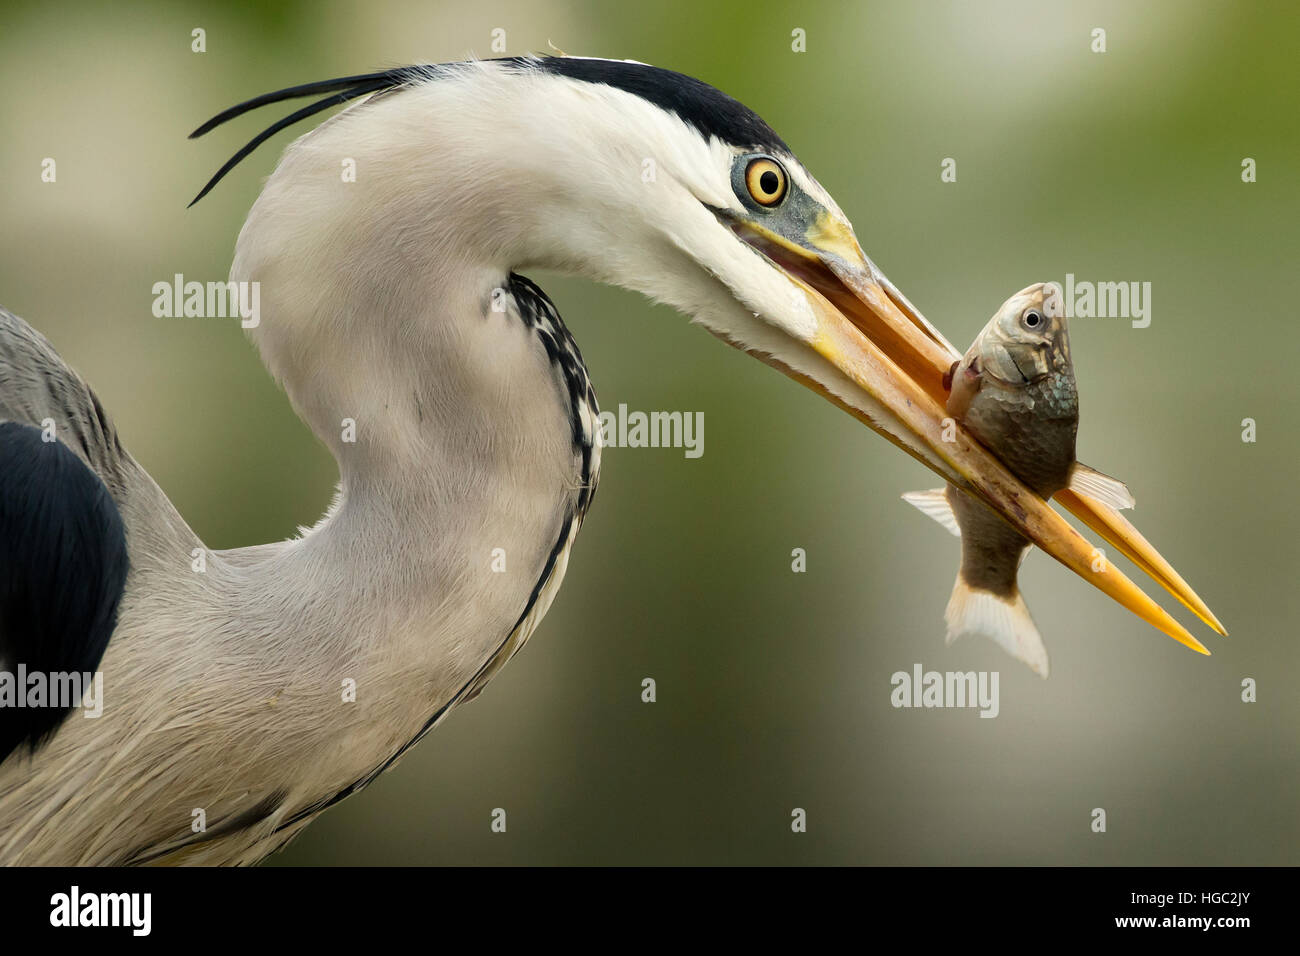 Héron cendré (Ardea cinerea) capture d'un poisson Photo Stock